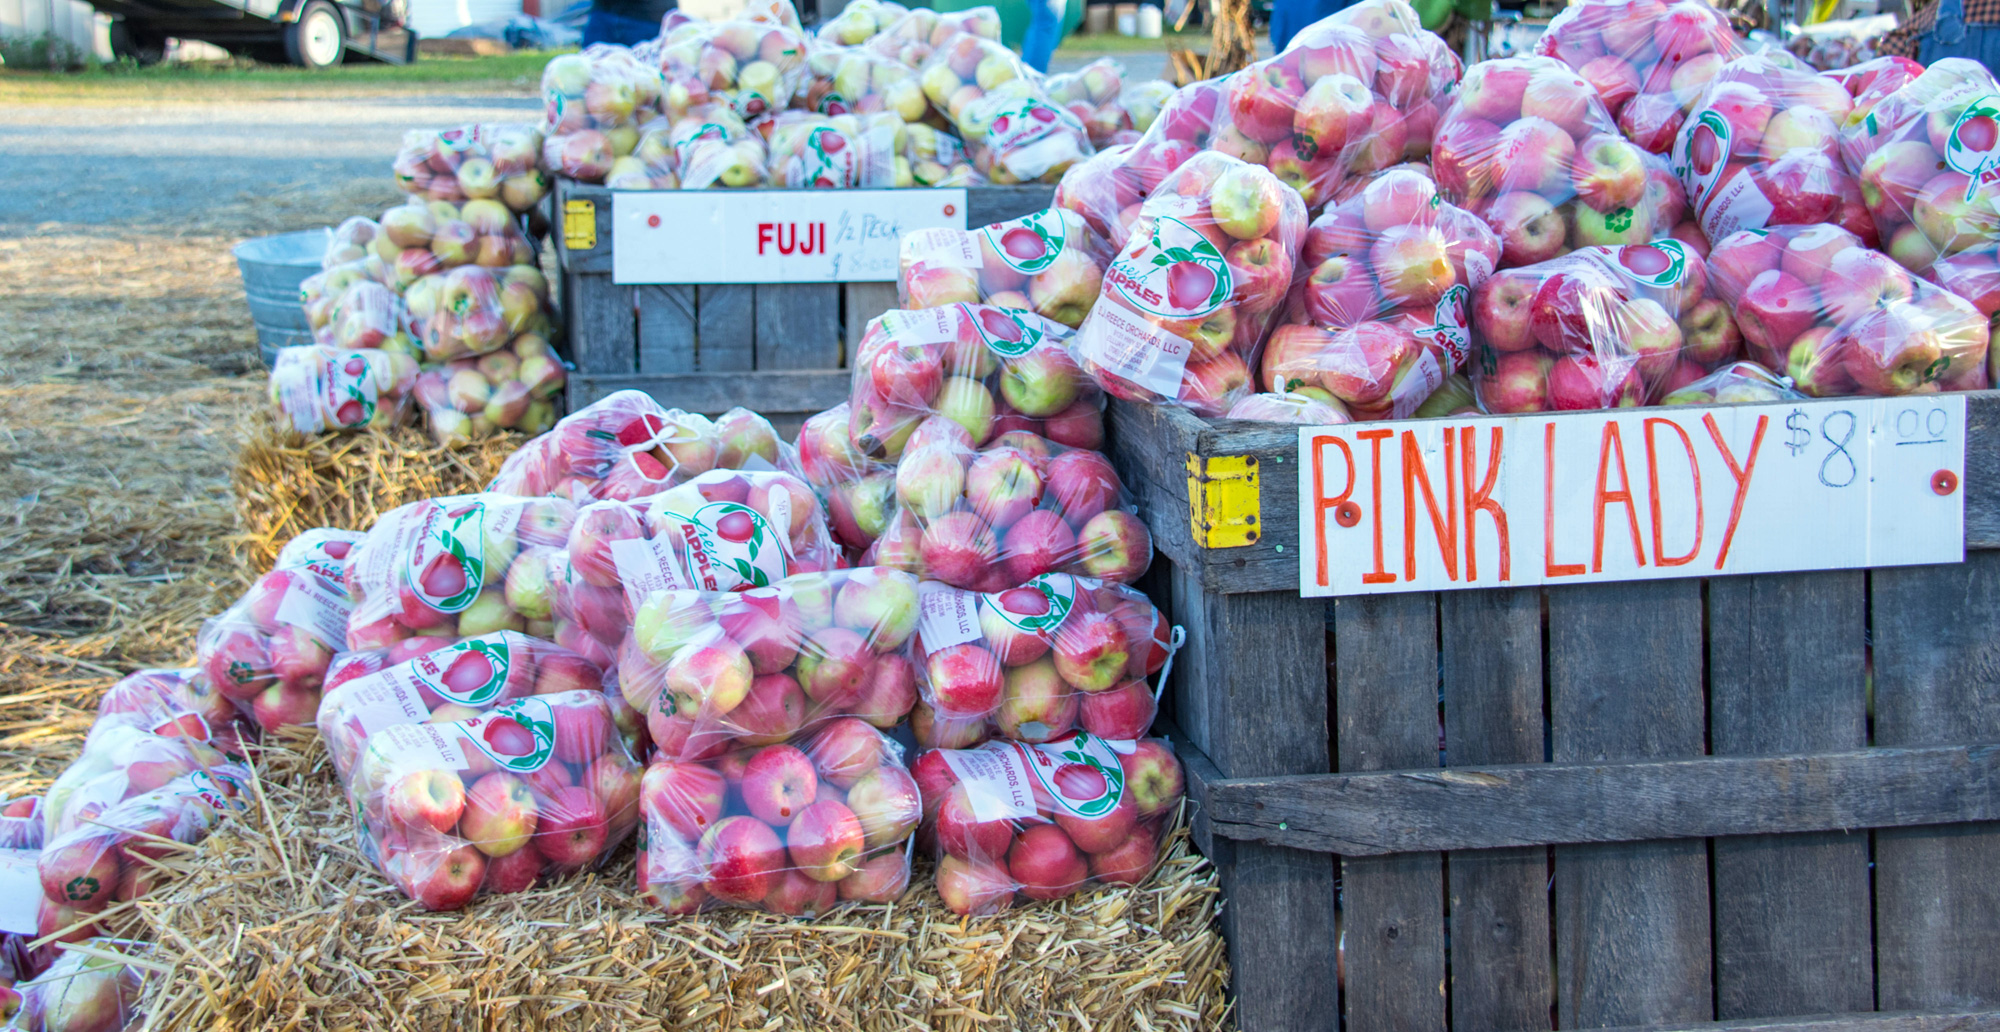 Bags of Pink Lady and Fuji apples on display at the Georgia Apple Festival in Ellijay, Georgia